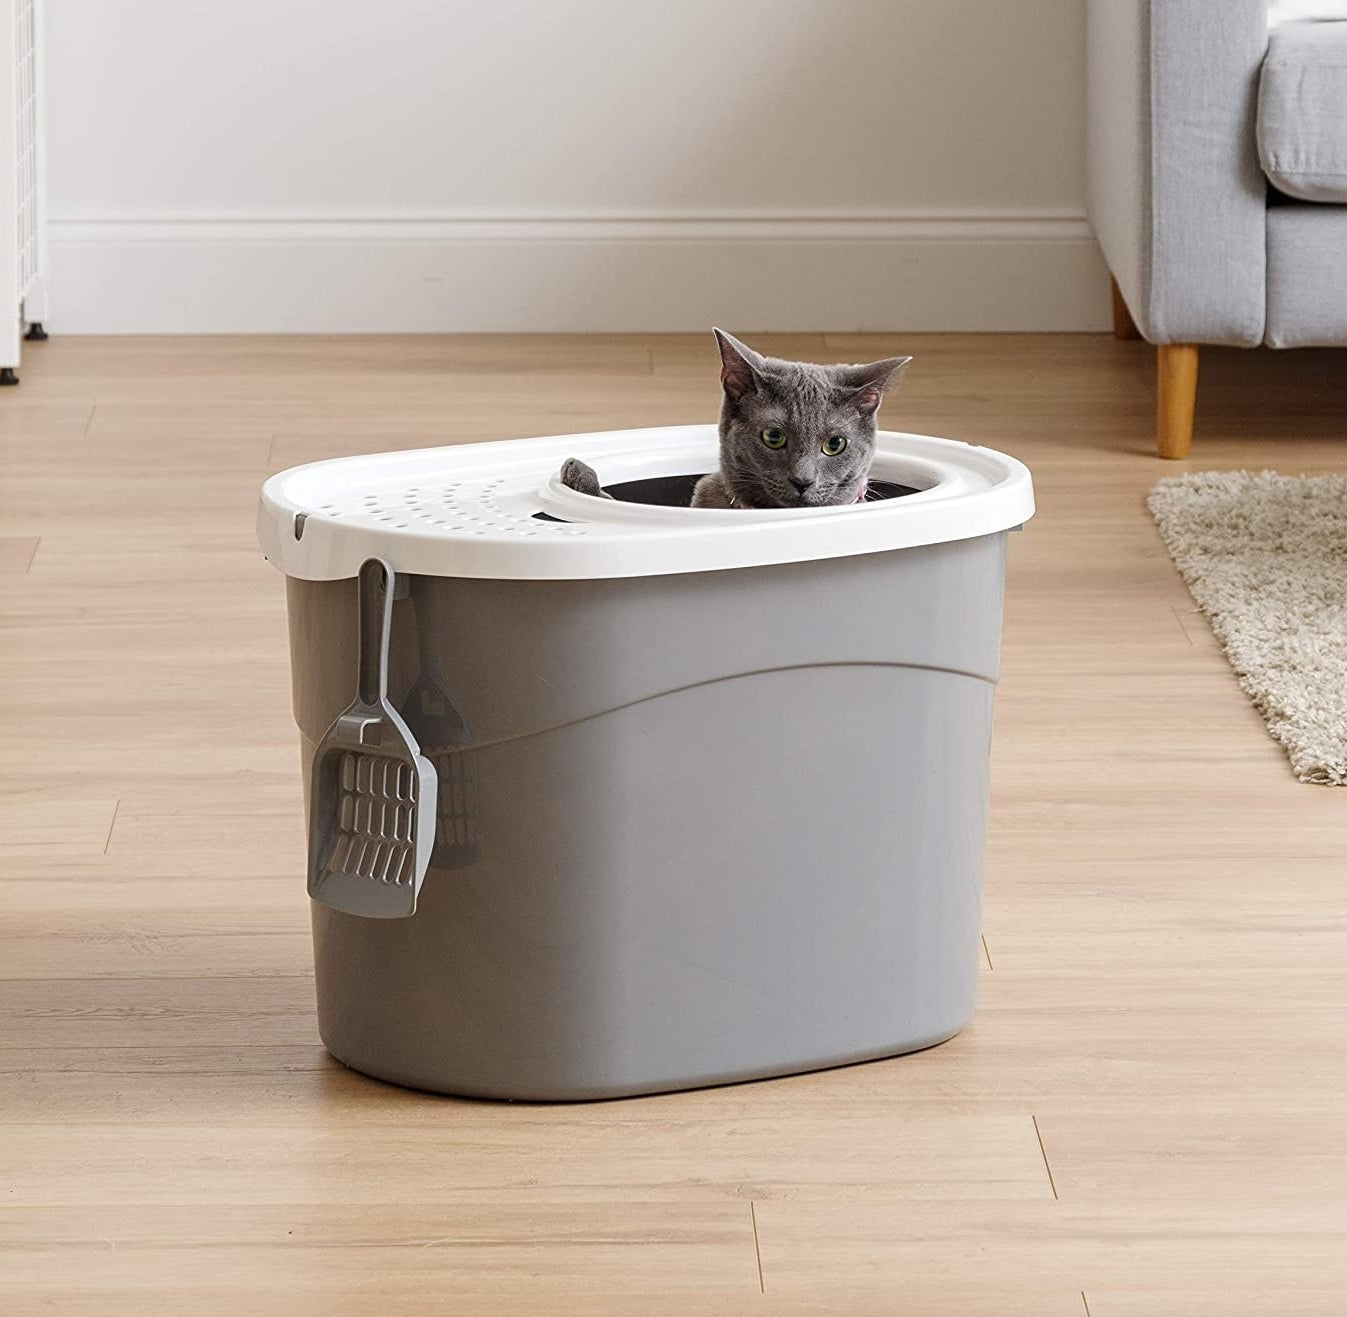 A cat inside of the litter box that has a hole in the top for entering, a ventilated lid, and a straining scoop hanging off the side